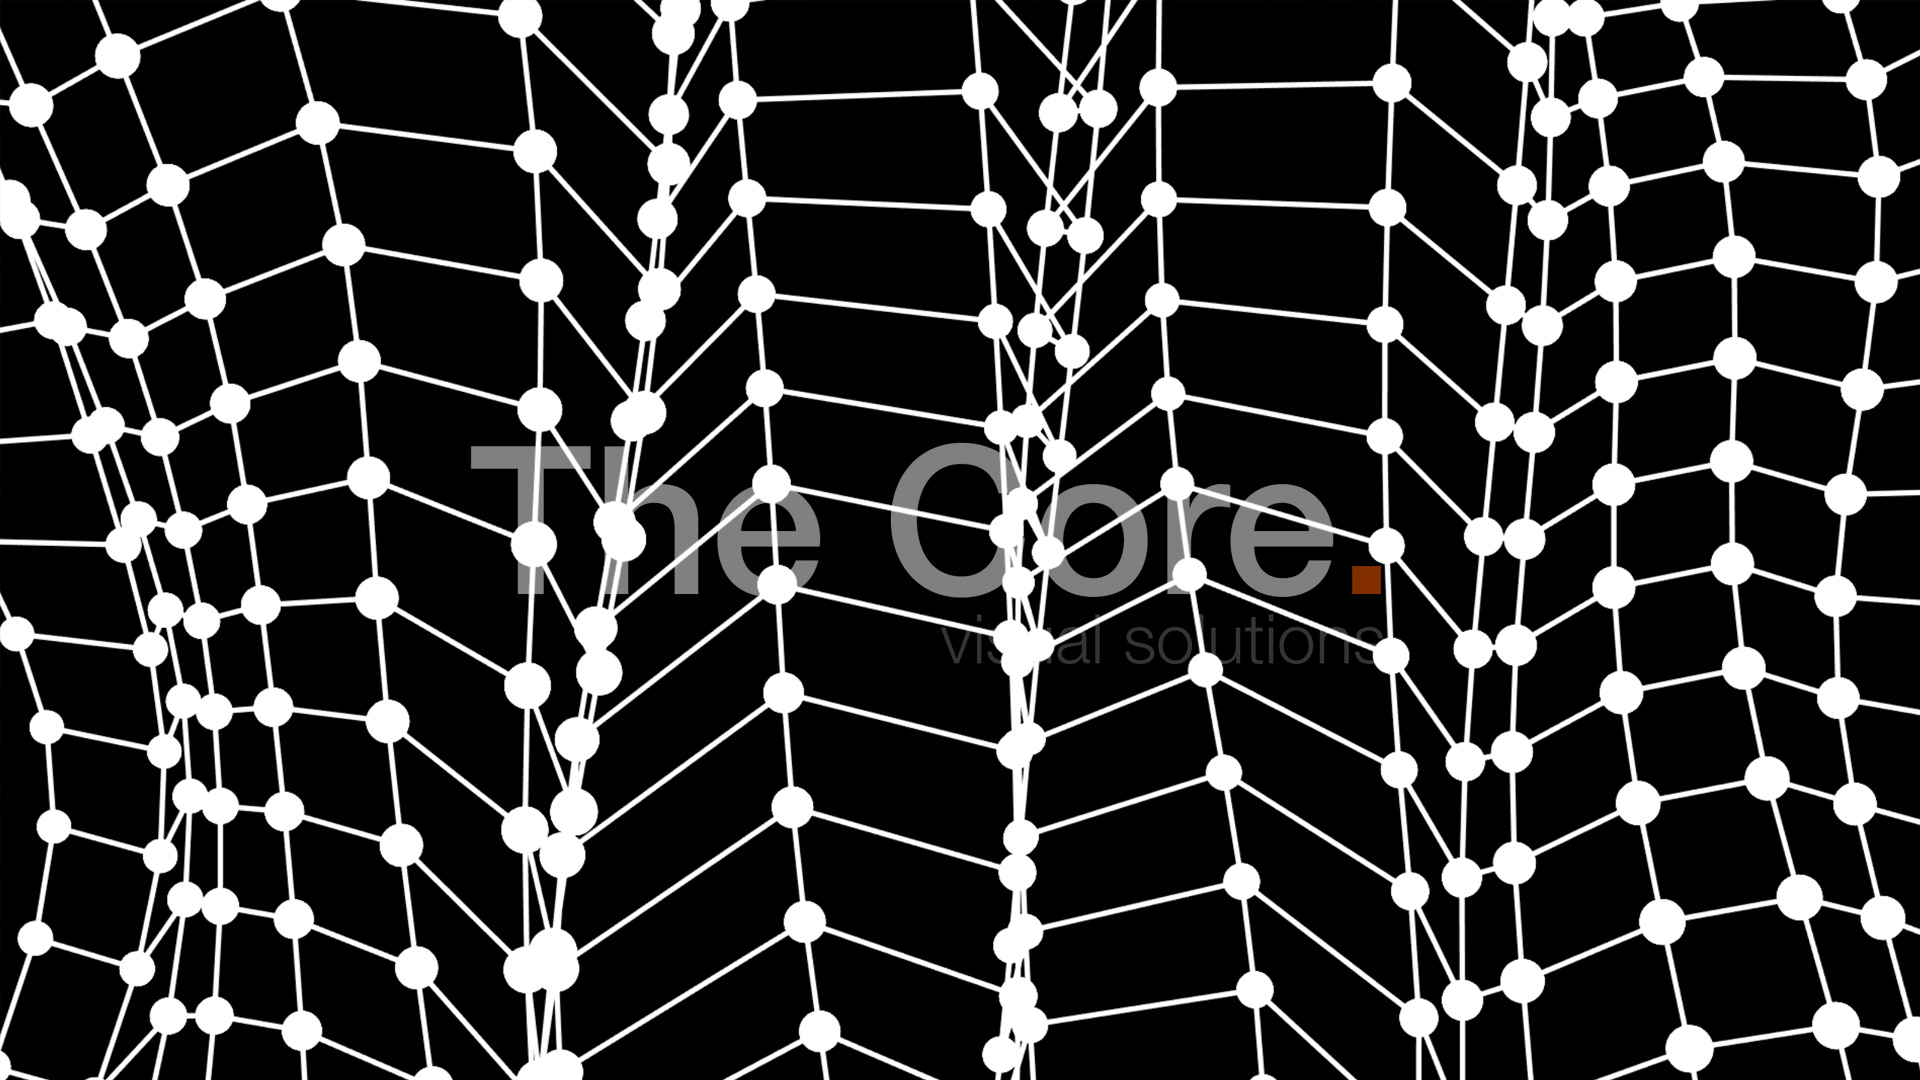 00065-WIRE-GRID-MOVE-DOWN-1-STILL